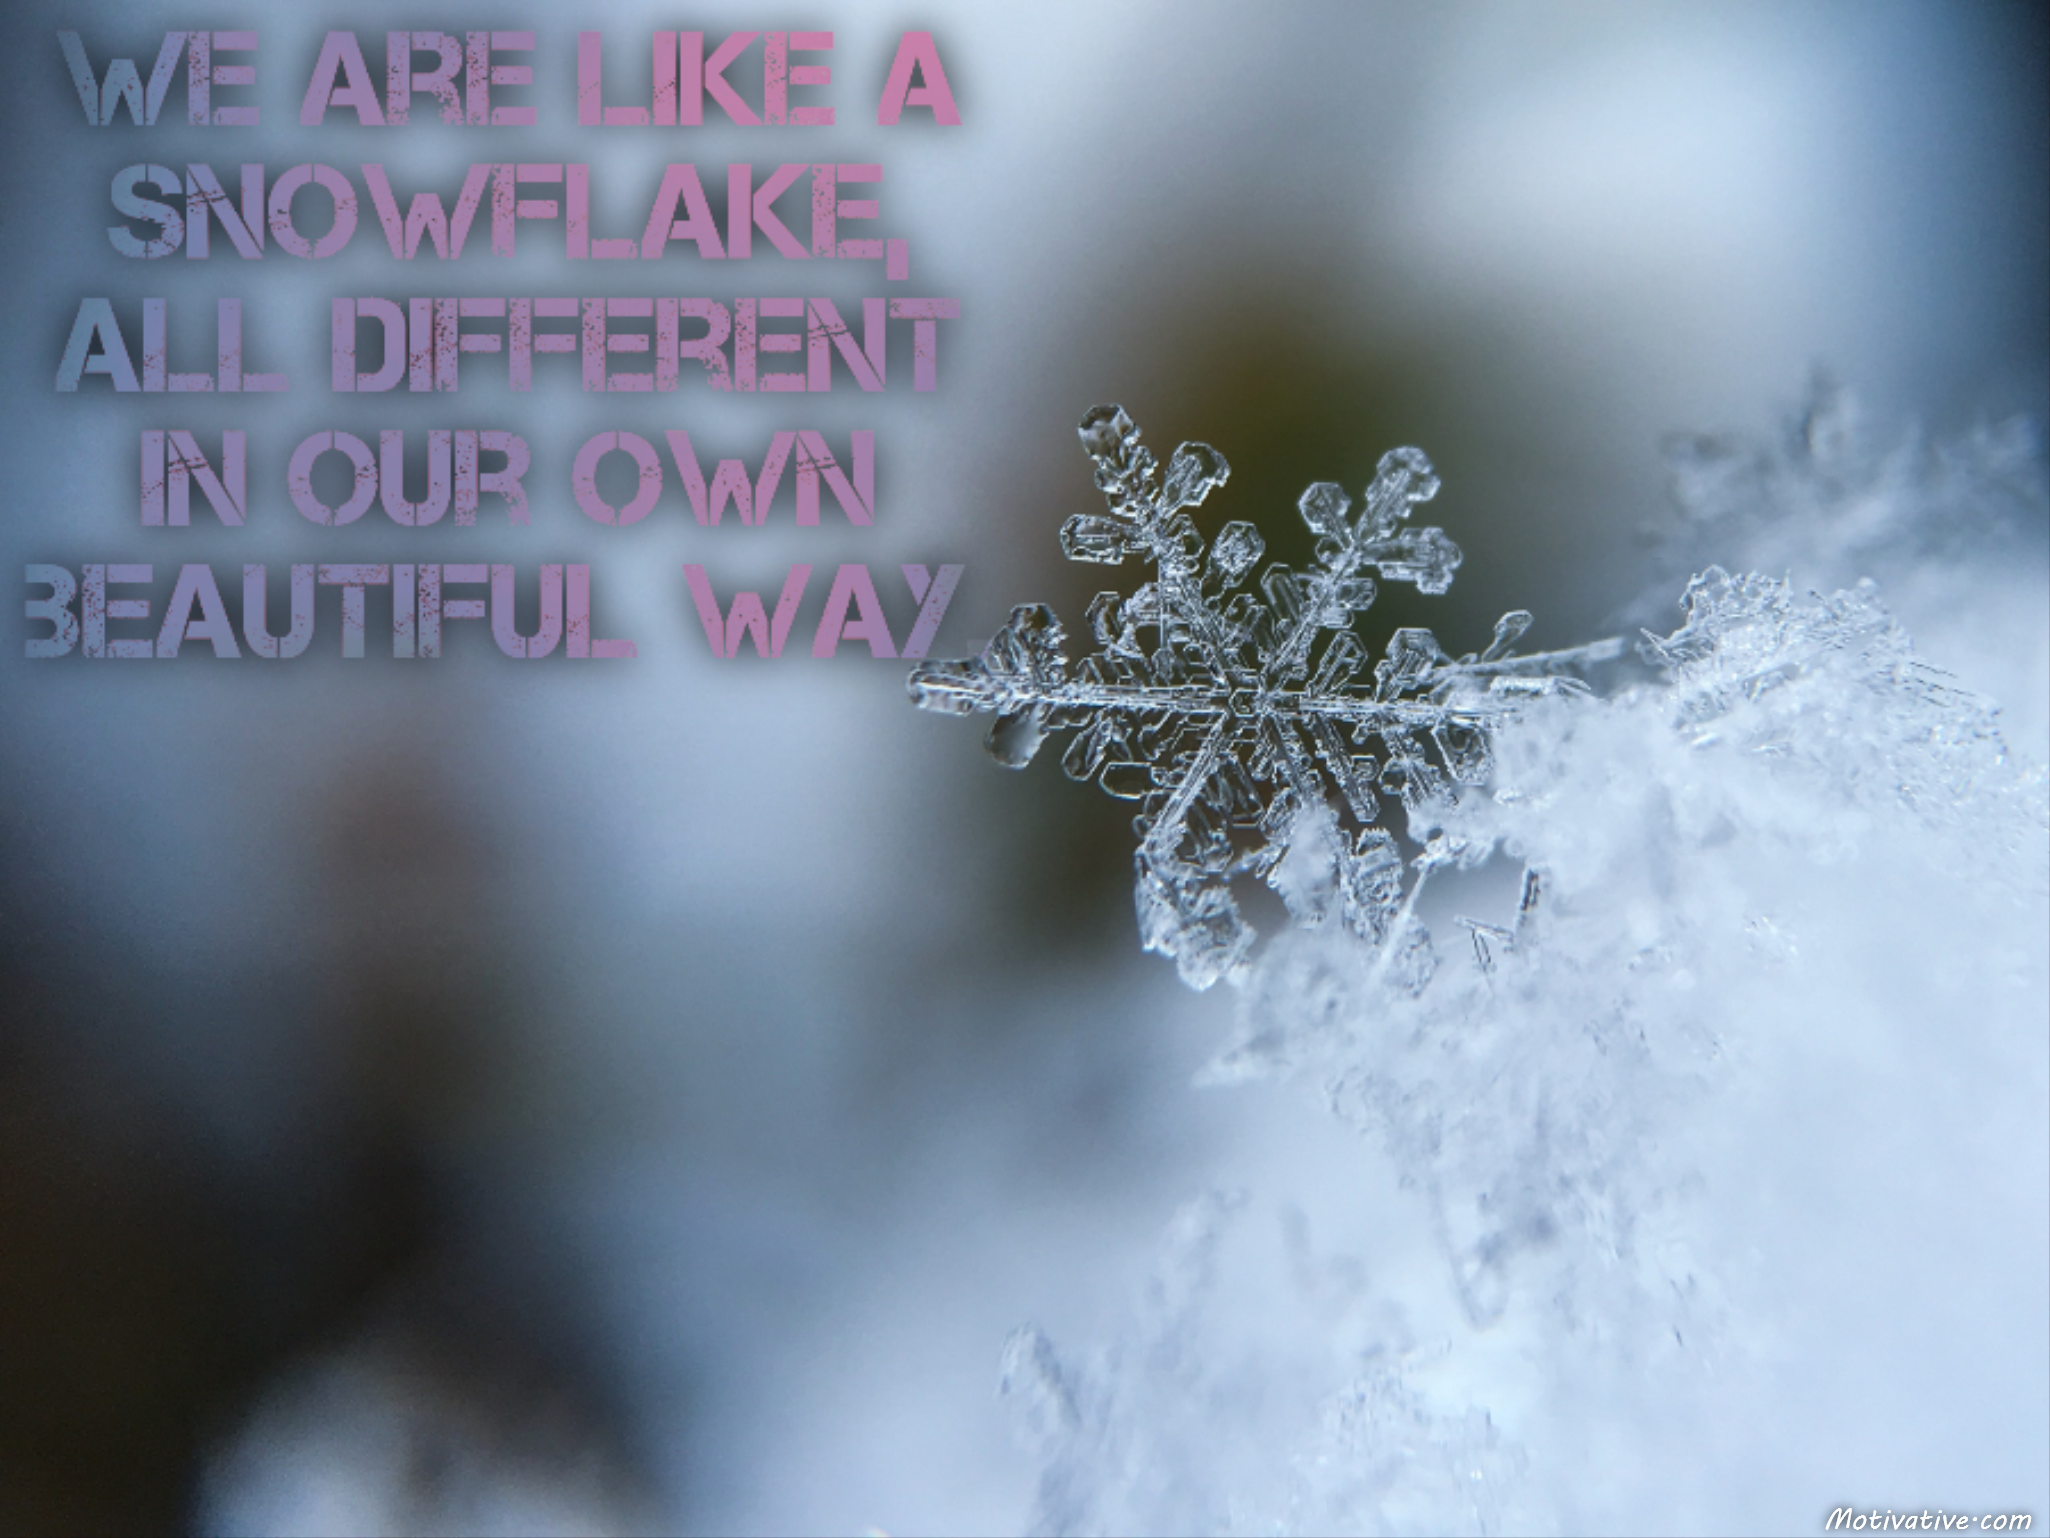 We are like a snowflake, all different in our own beautiful way.